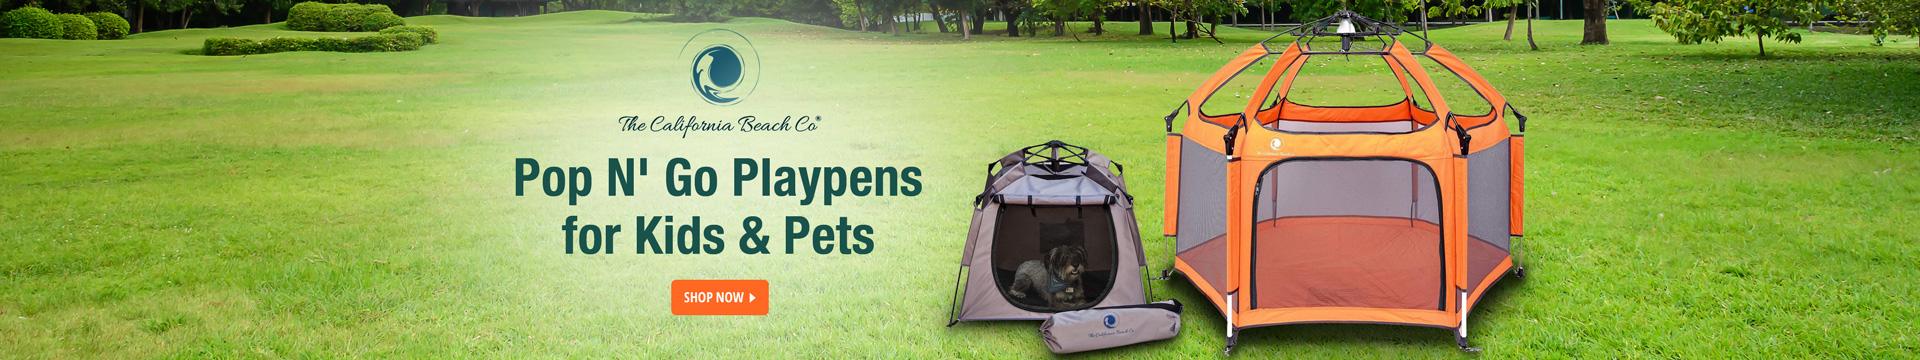 Pop N' Go Playpens for Kids & Pets